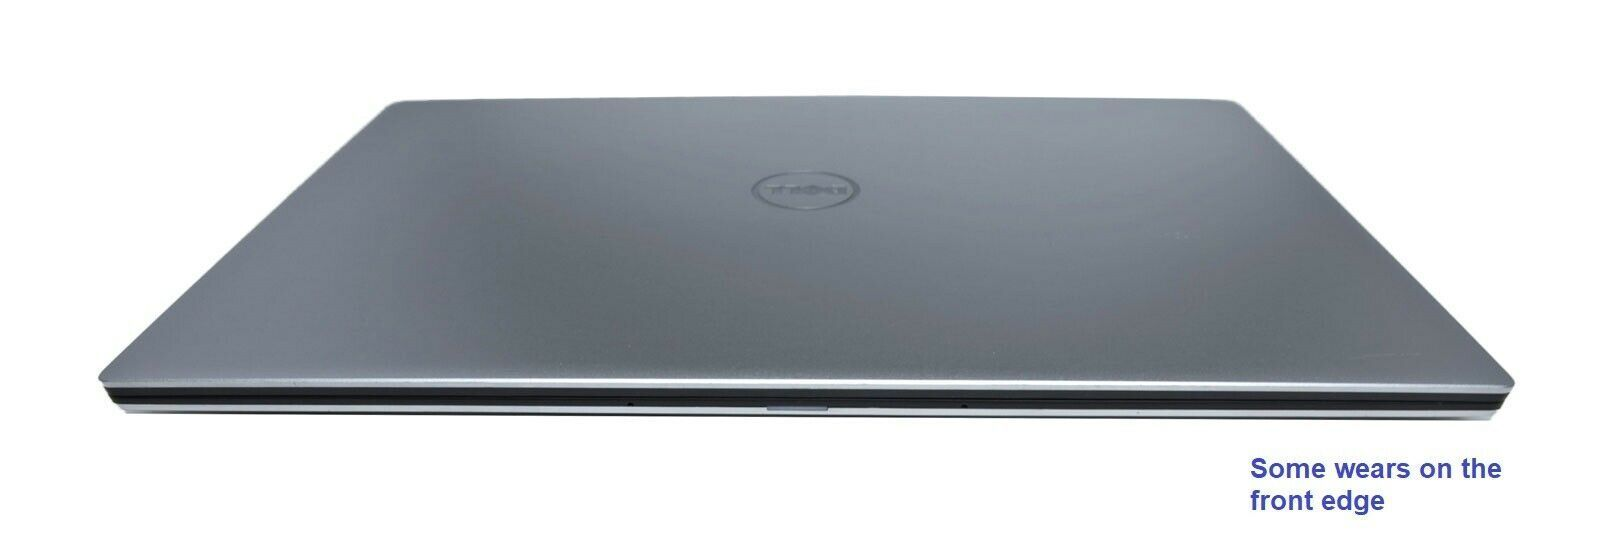 Dell XPS 13 9360 QHD+ UltraBook: Core i5-7200U, 256GB, 8GB RAM, 1.2KG - CruiseTech